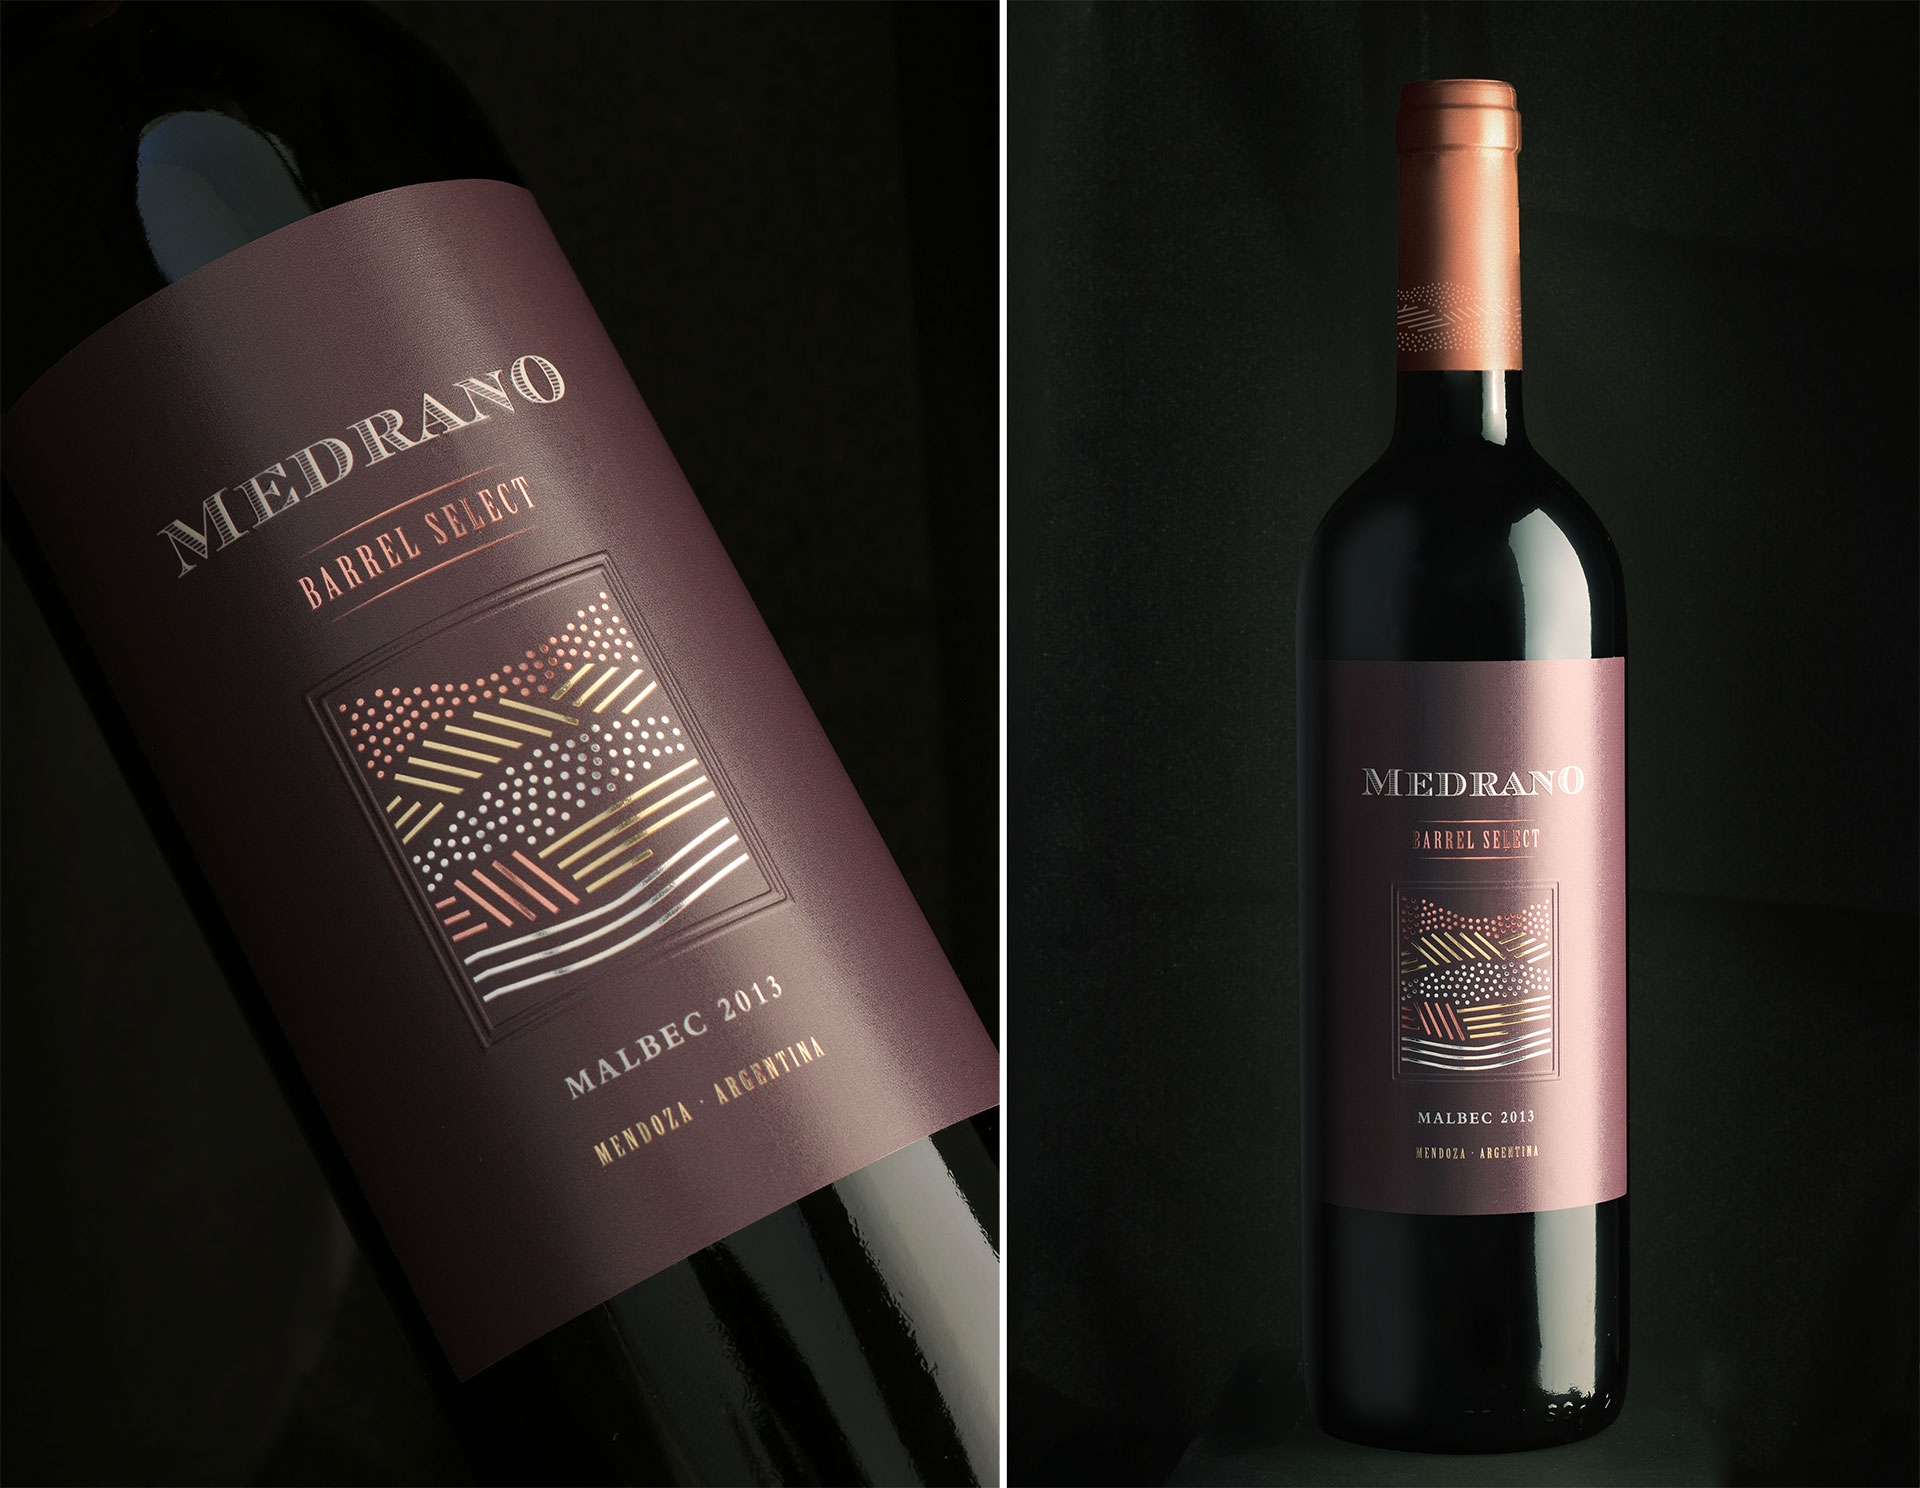 Wine Packaging Design. Medrano Barrel Select. Filus Wine.